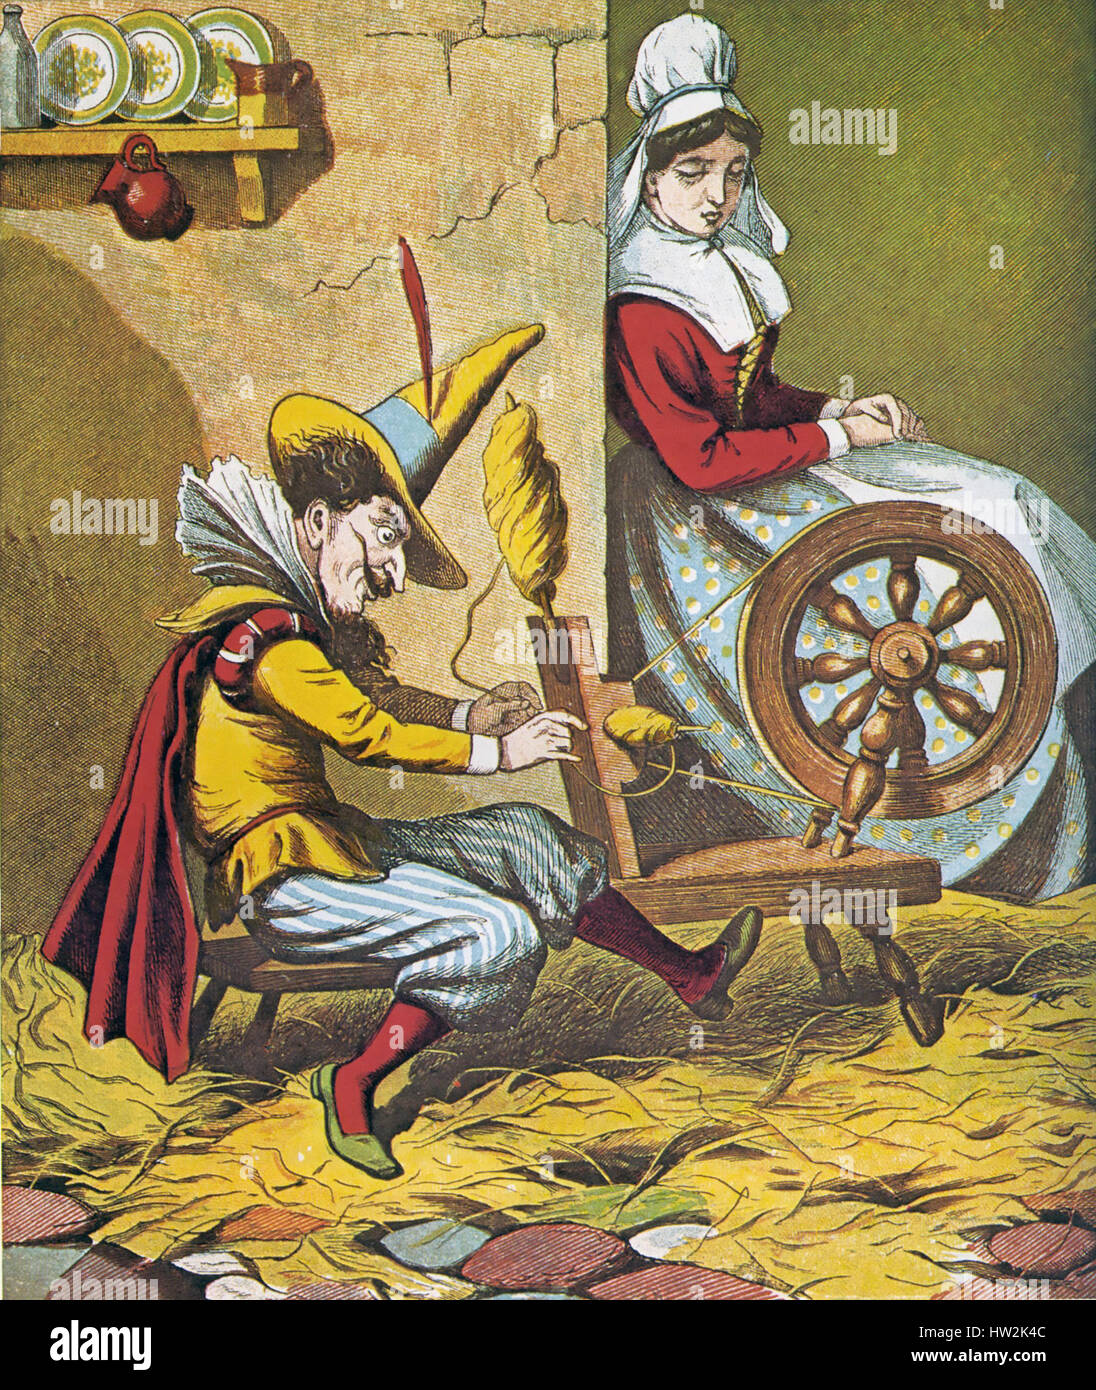 Rumpelstiltskin Fairy Tale Collected By The Brothers Grimm